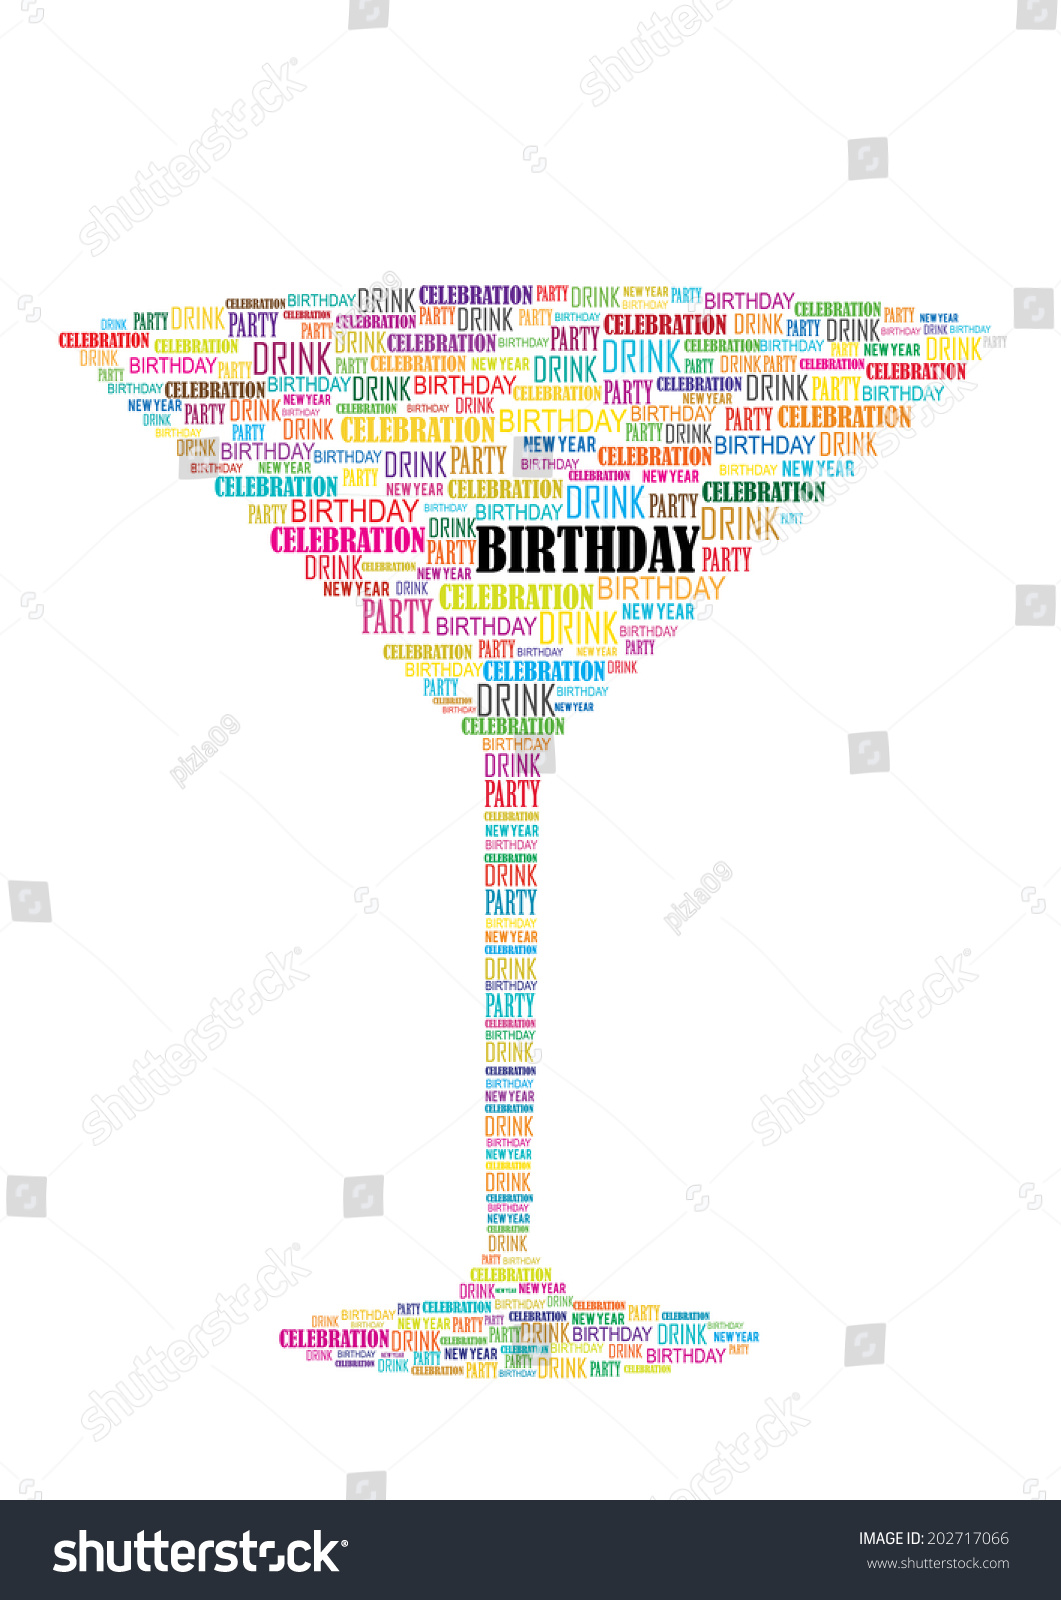 Vector birthday card wine glass made stock vector 202717066 vector birthday card with wine glass made of words bookmarktalkfo Image collections